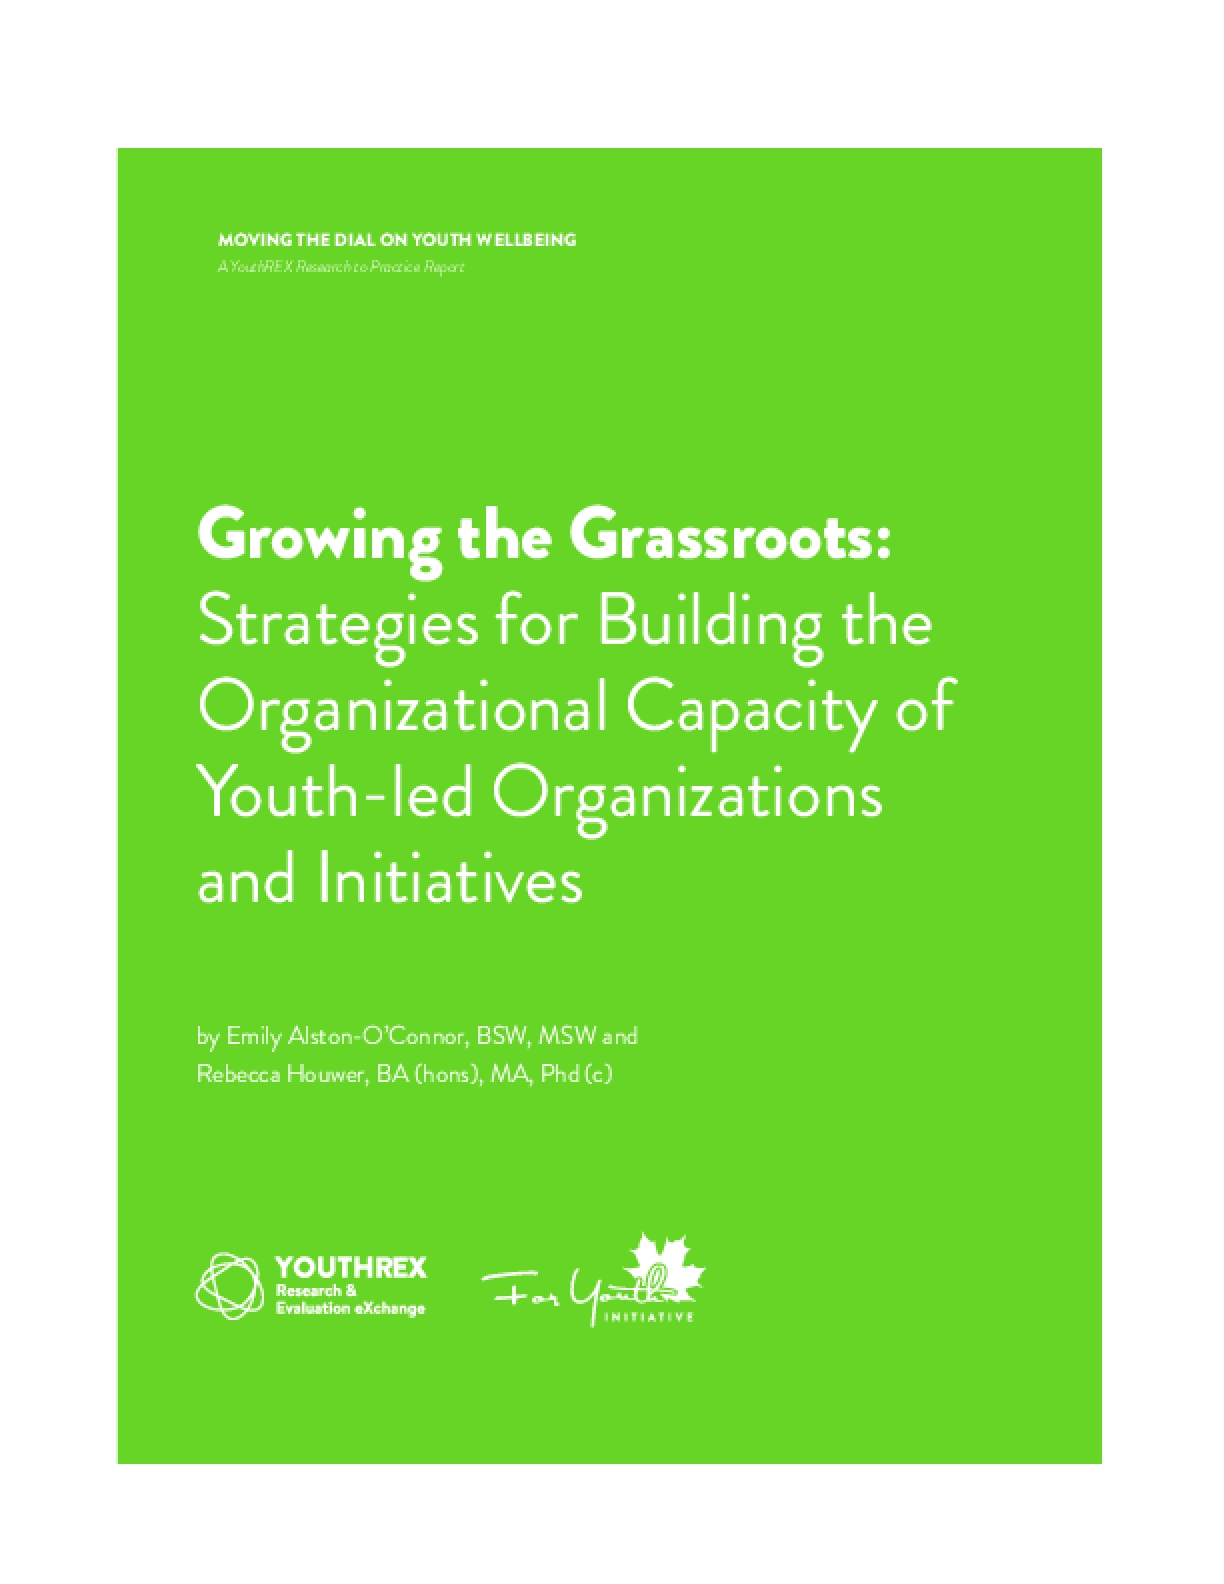 Growing The Grassroots: Strategies For Building The Organizational Capacity Of Youth-Led Organizations And Initiatives